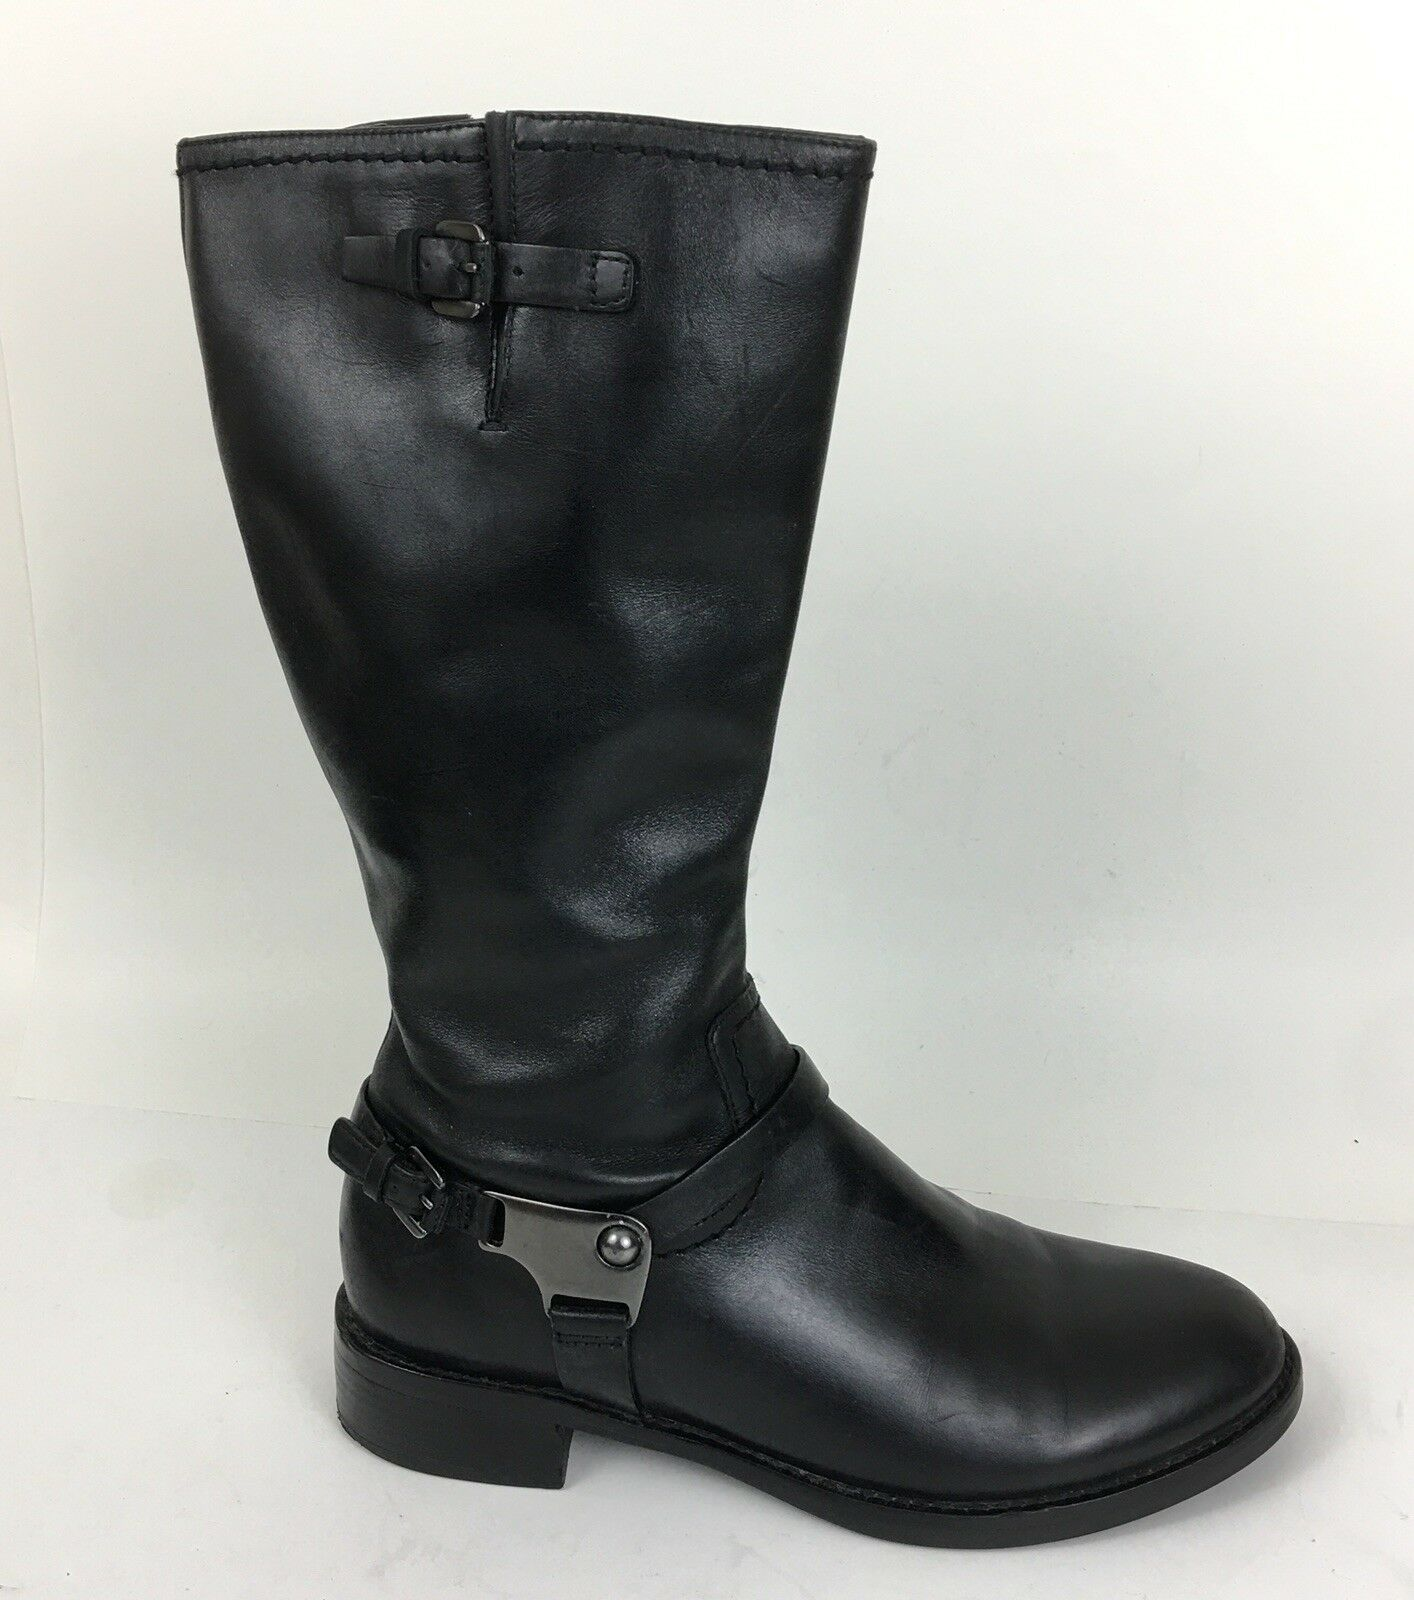 ECCO Women's Black Leather Mid Calf US 8  EUR 39 Boots w Strap & Buckles  F19